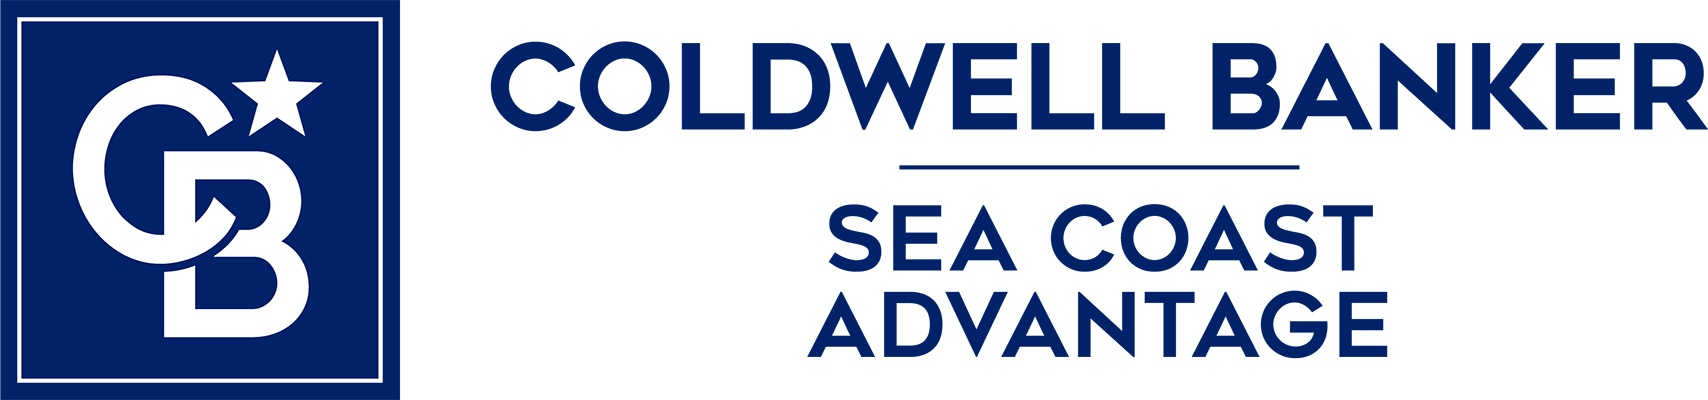 Chris Baynes - Coldwell Banker Sea Coast Advantage Realty Logo